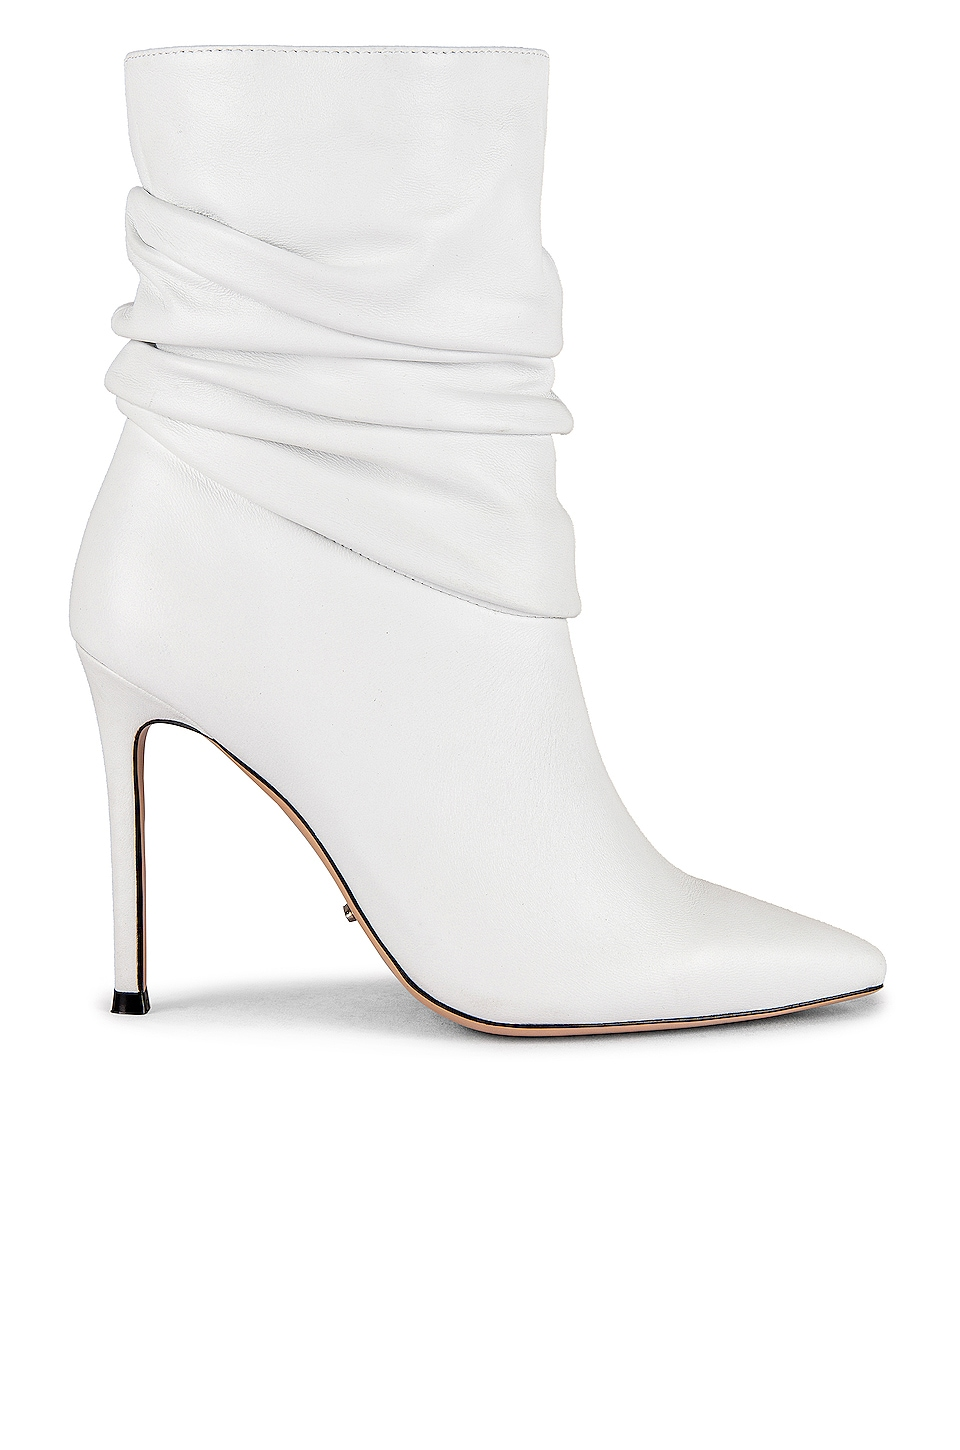 Tony Bianco Lane Boot in White Sheep Nappa